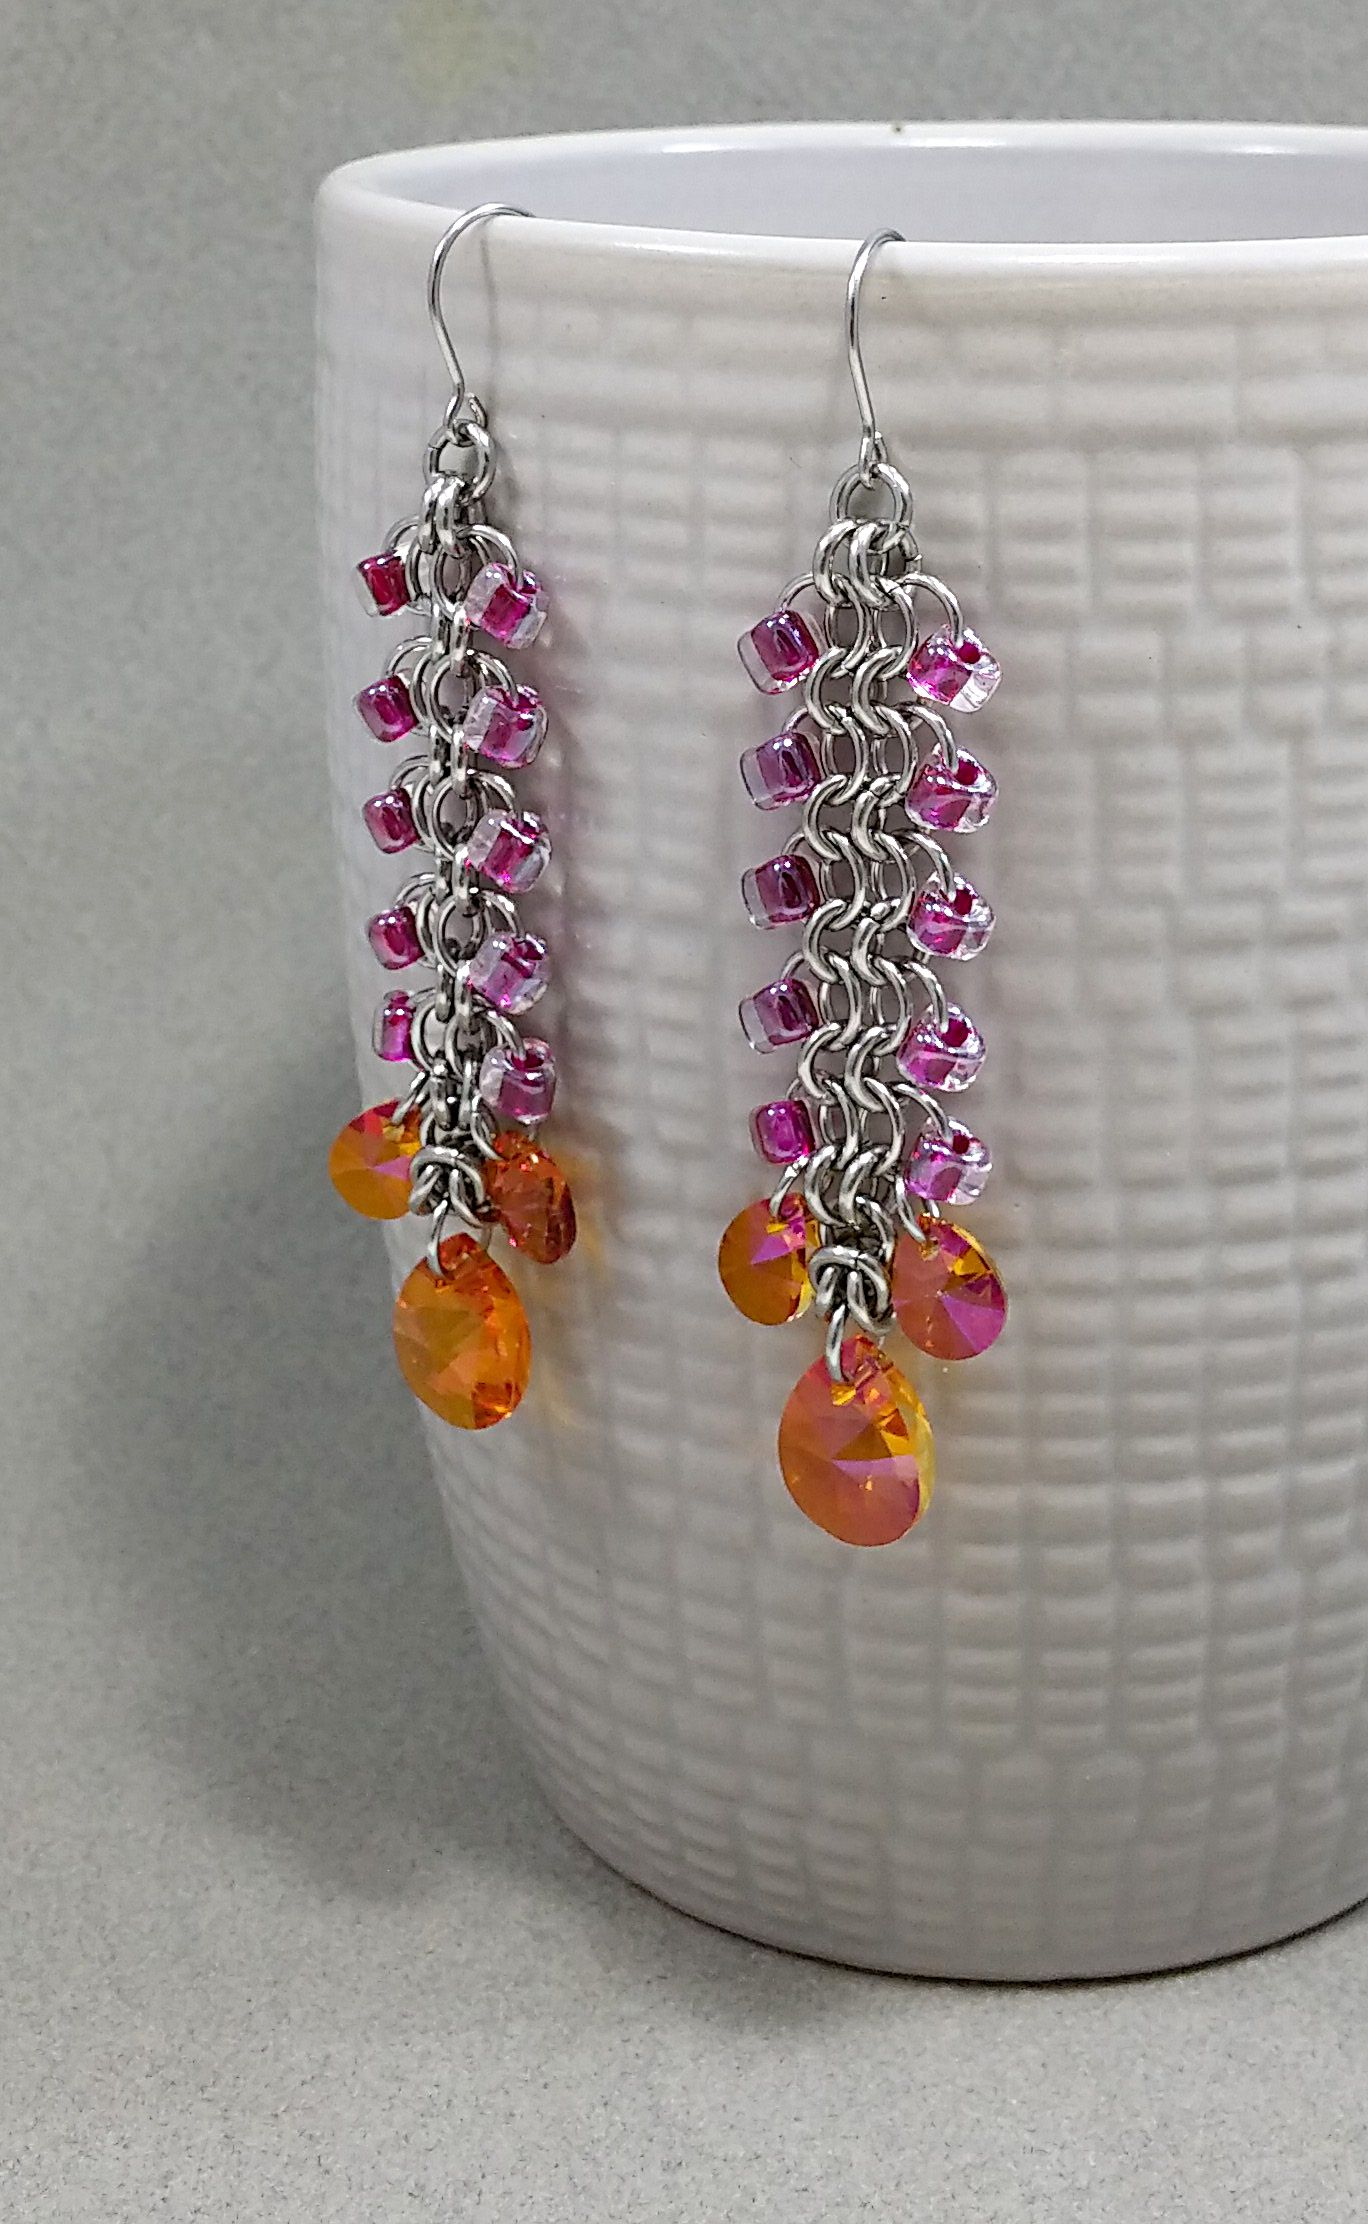 earrings fuscia astralpink crystal hotpink swarovski pink chainmail steel